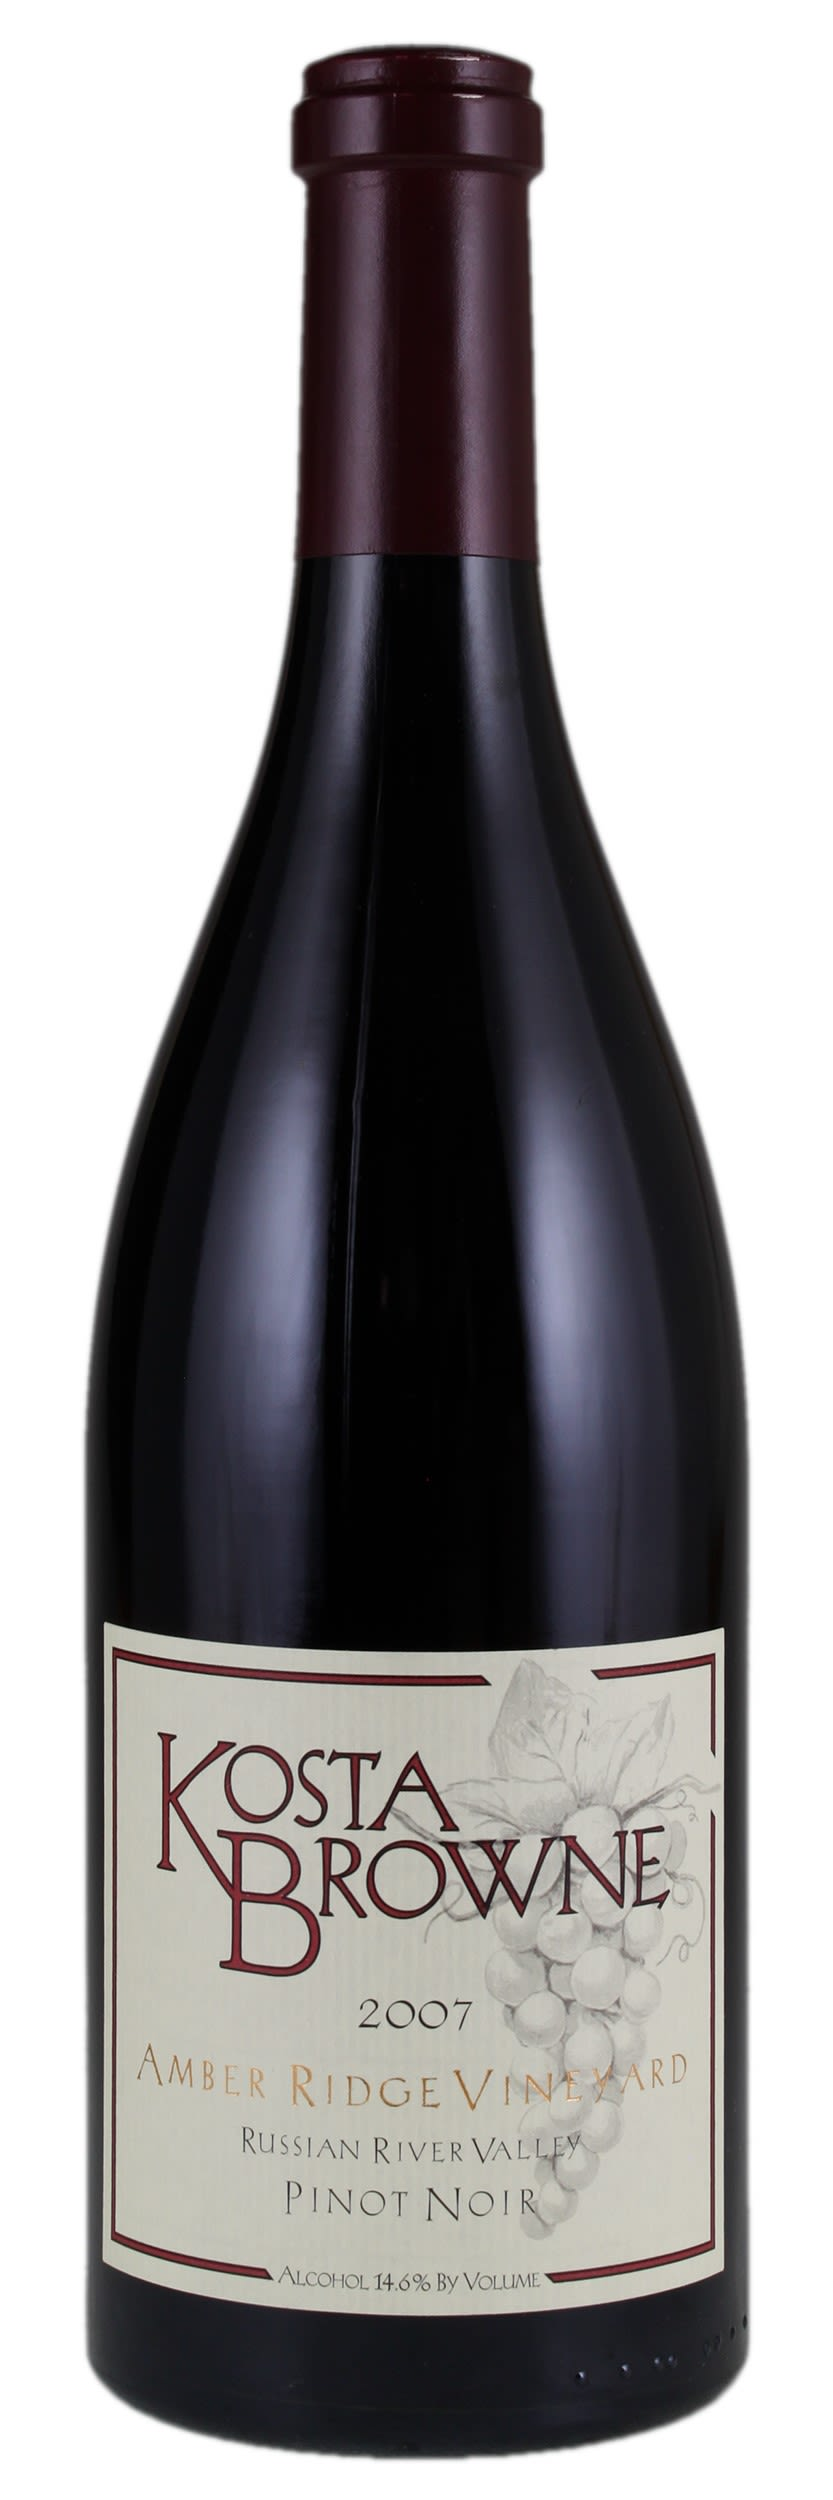 Kosta Browne Amber Ridge Vineyard Pinot Noir 2007 Front Bottle Shot